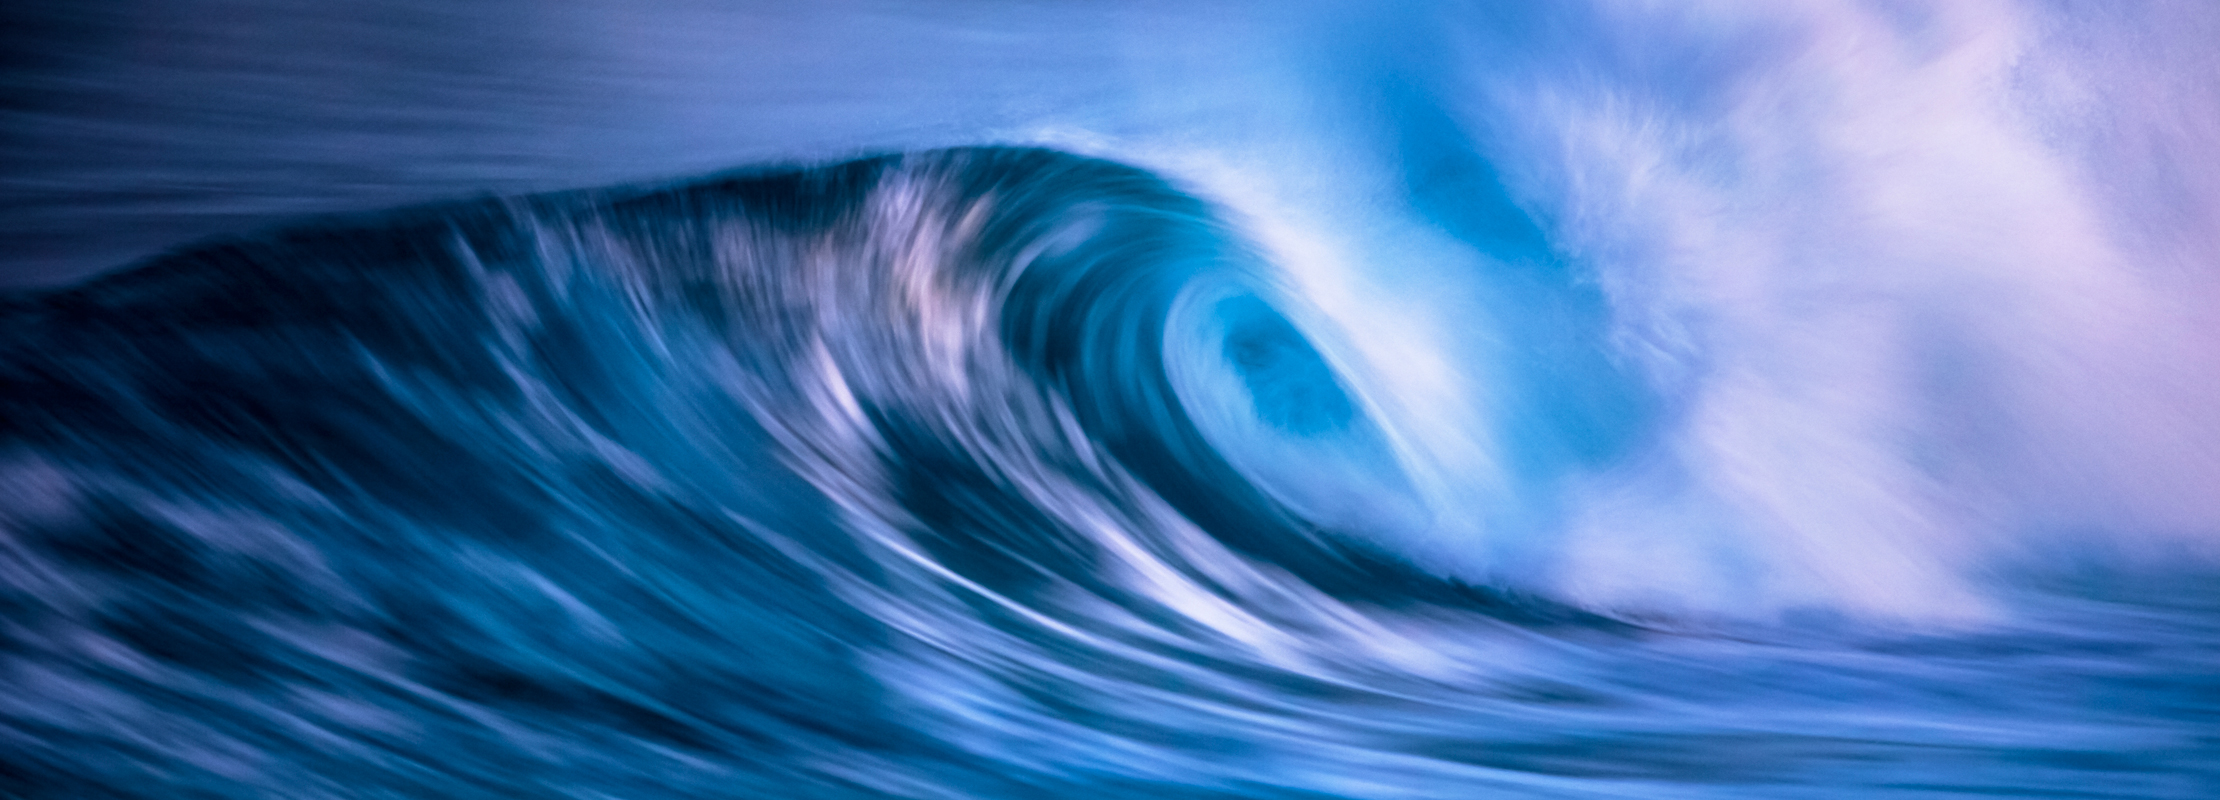 Image of waves, water in motion